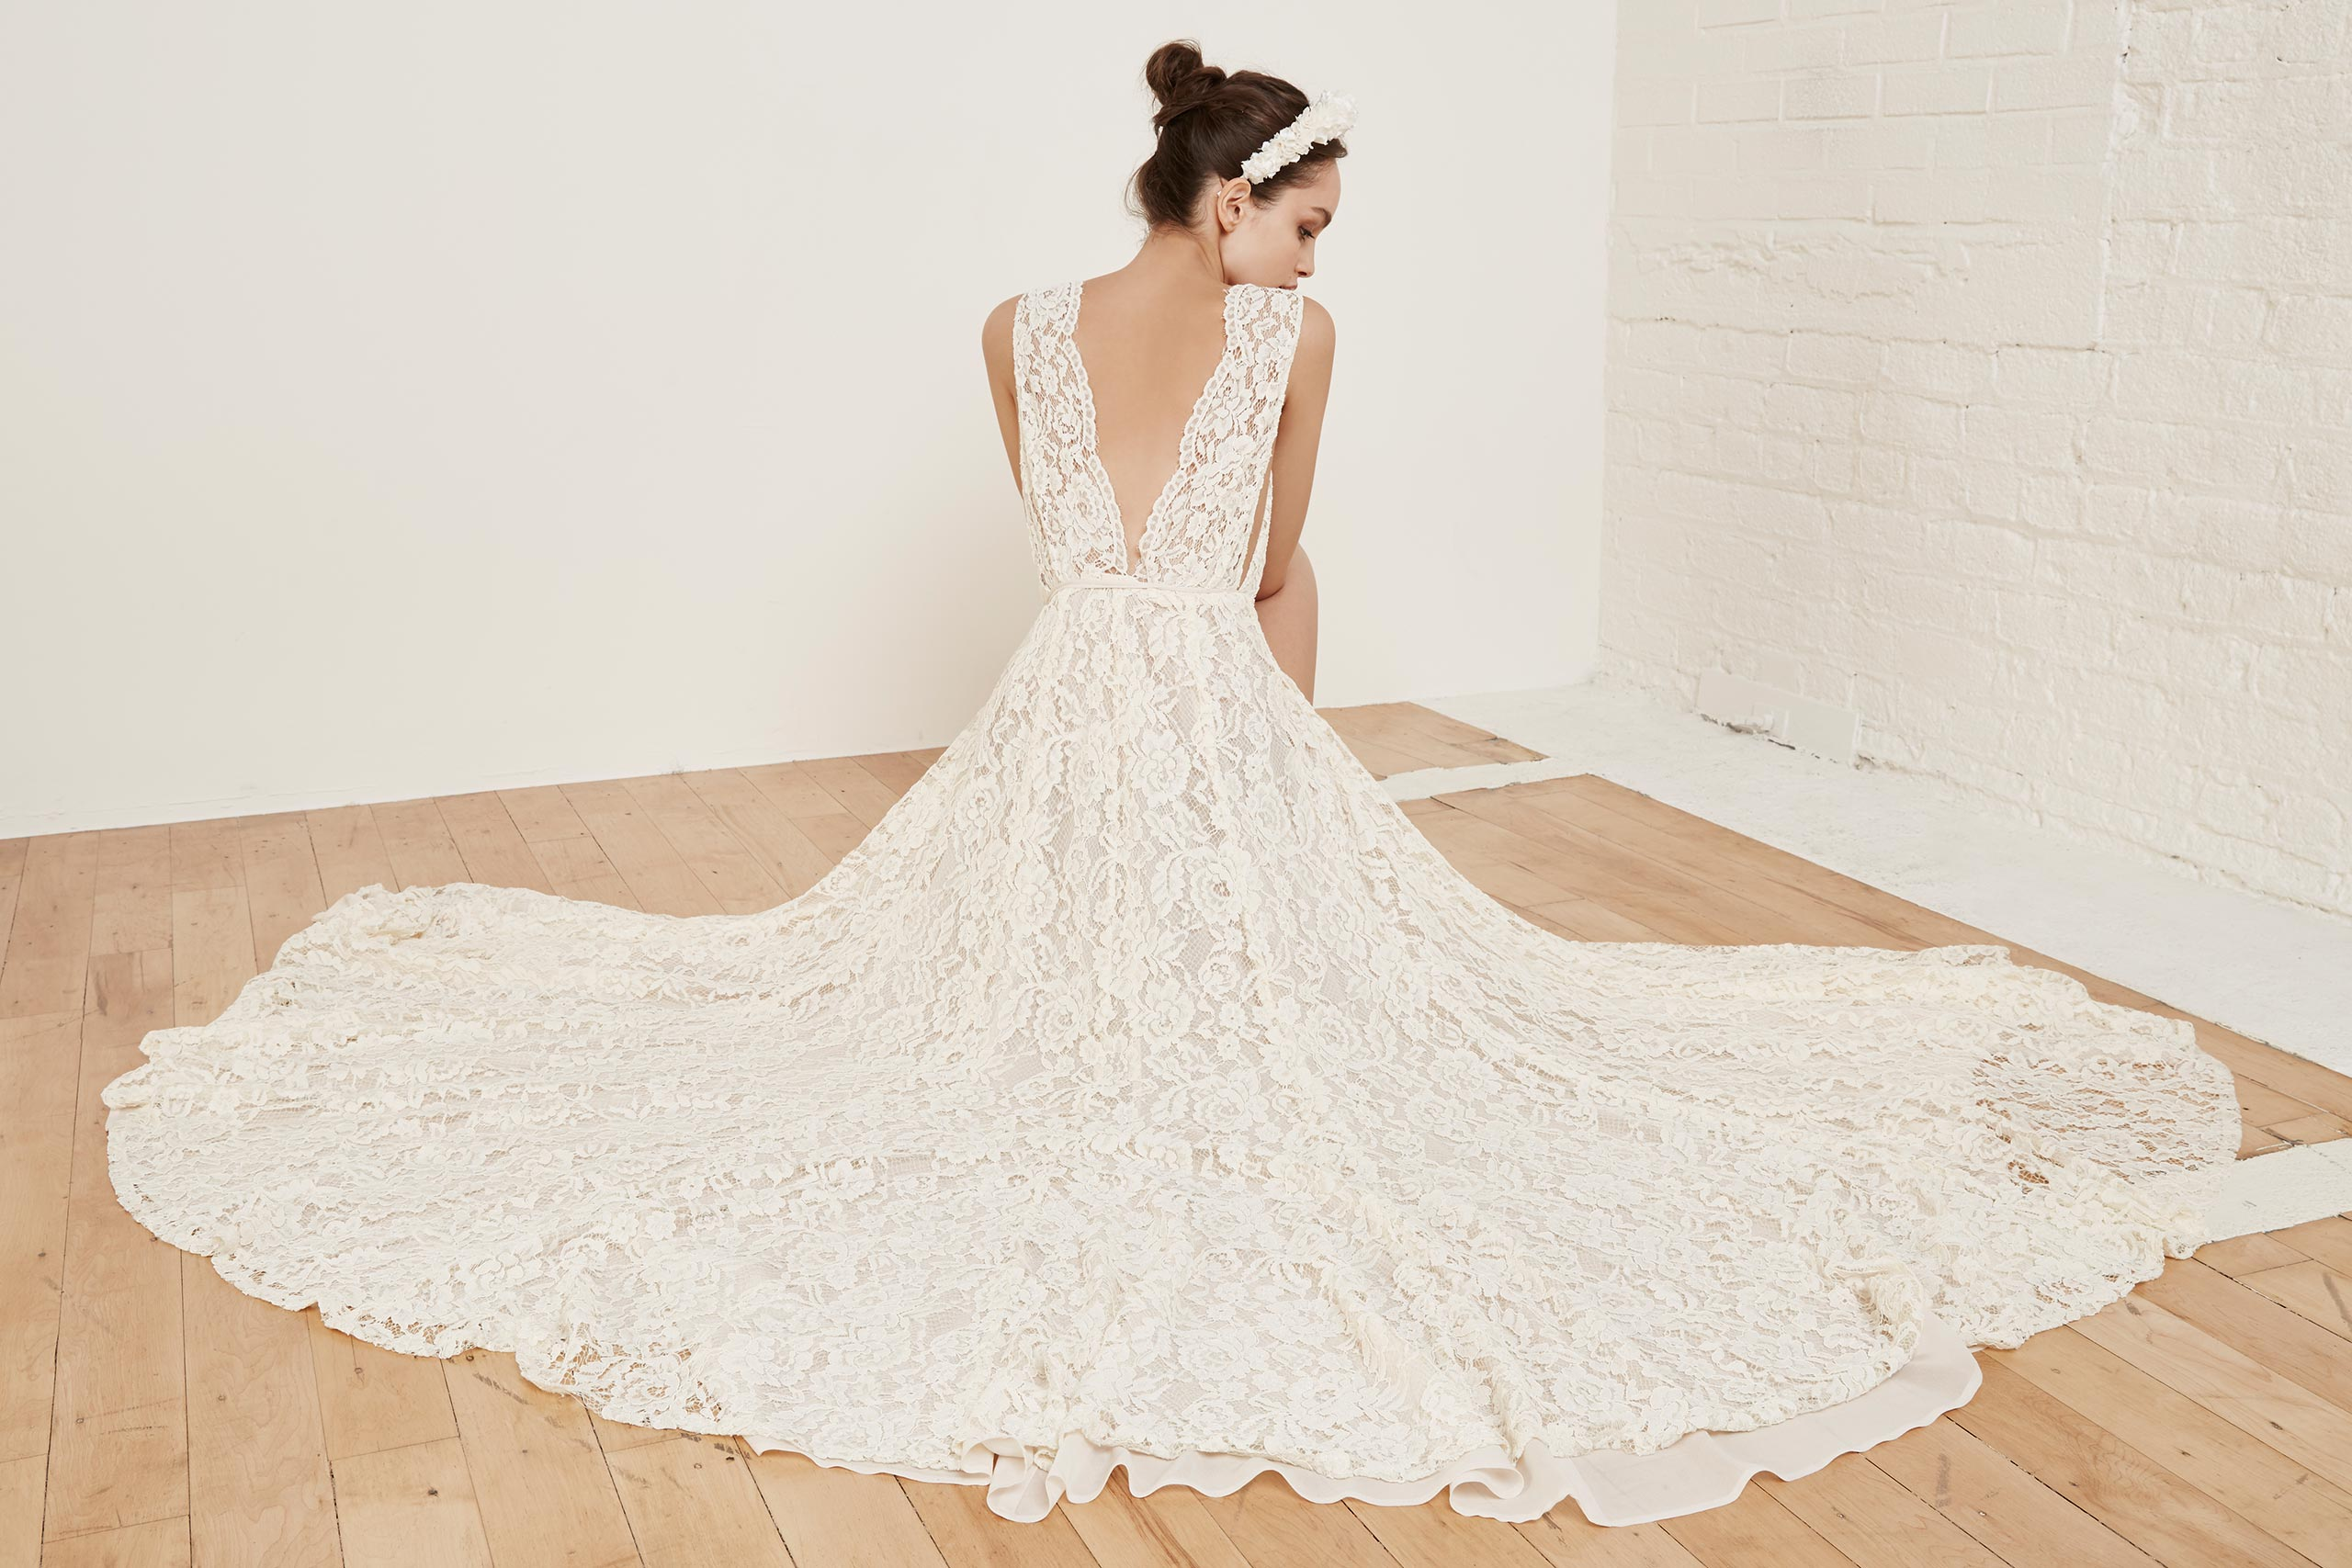 Where To Buy Wedding Dresses Online